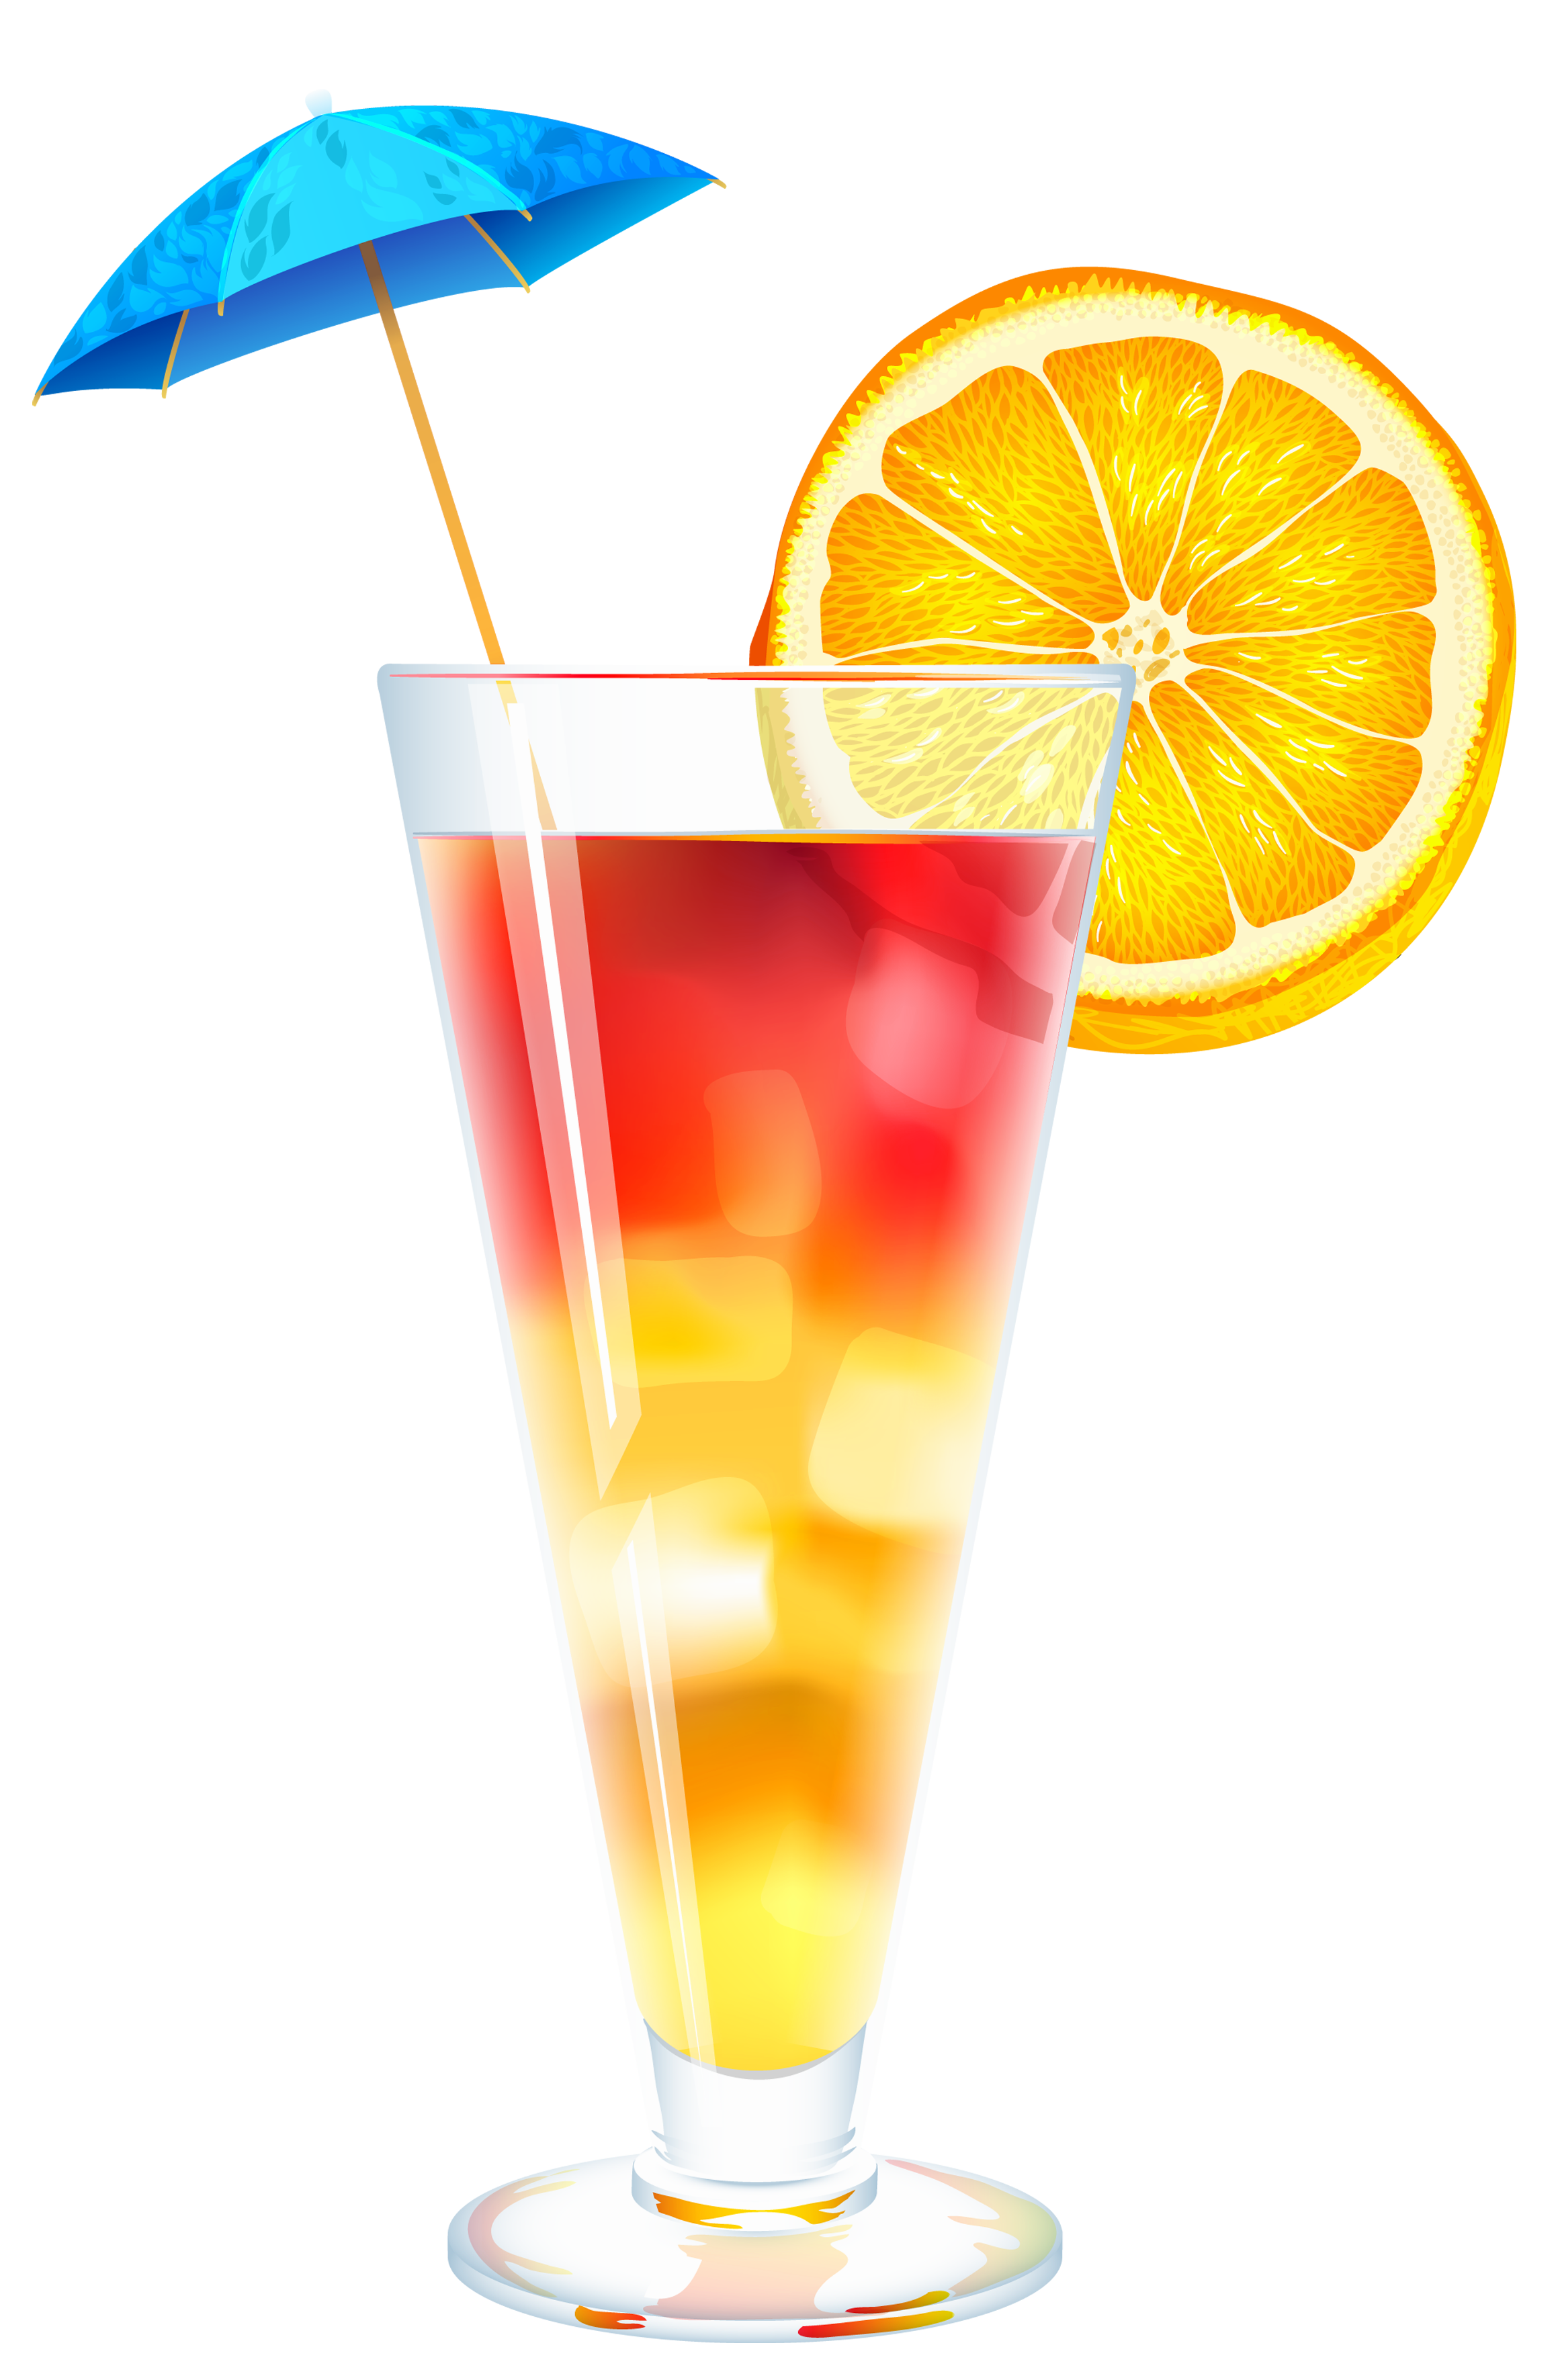 summer cocktail png clipart image clip art drinks ice cream rh pinterest com clip art drinking alcohol clip art drinking shots